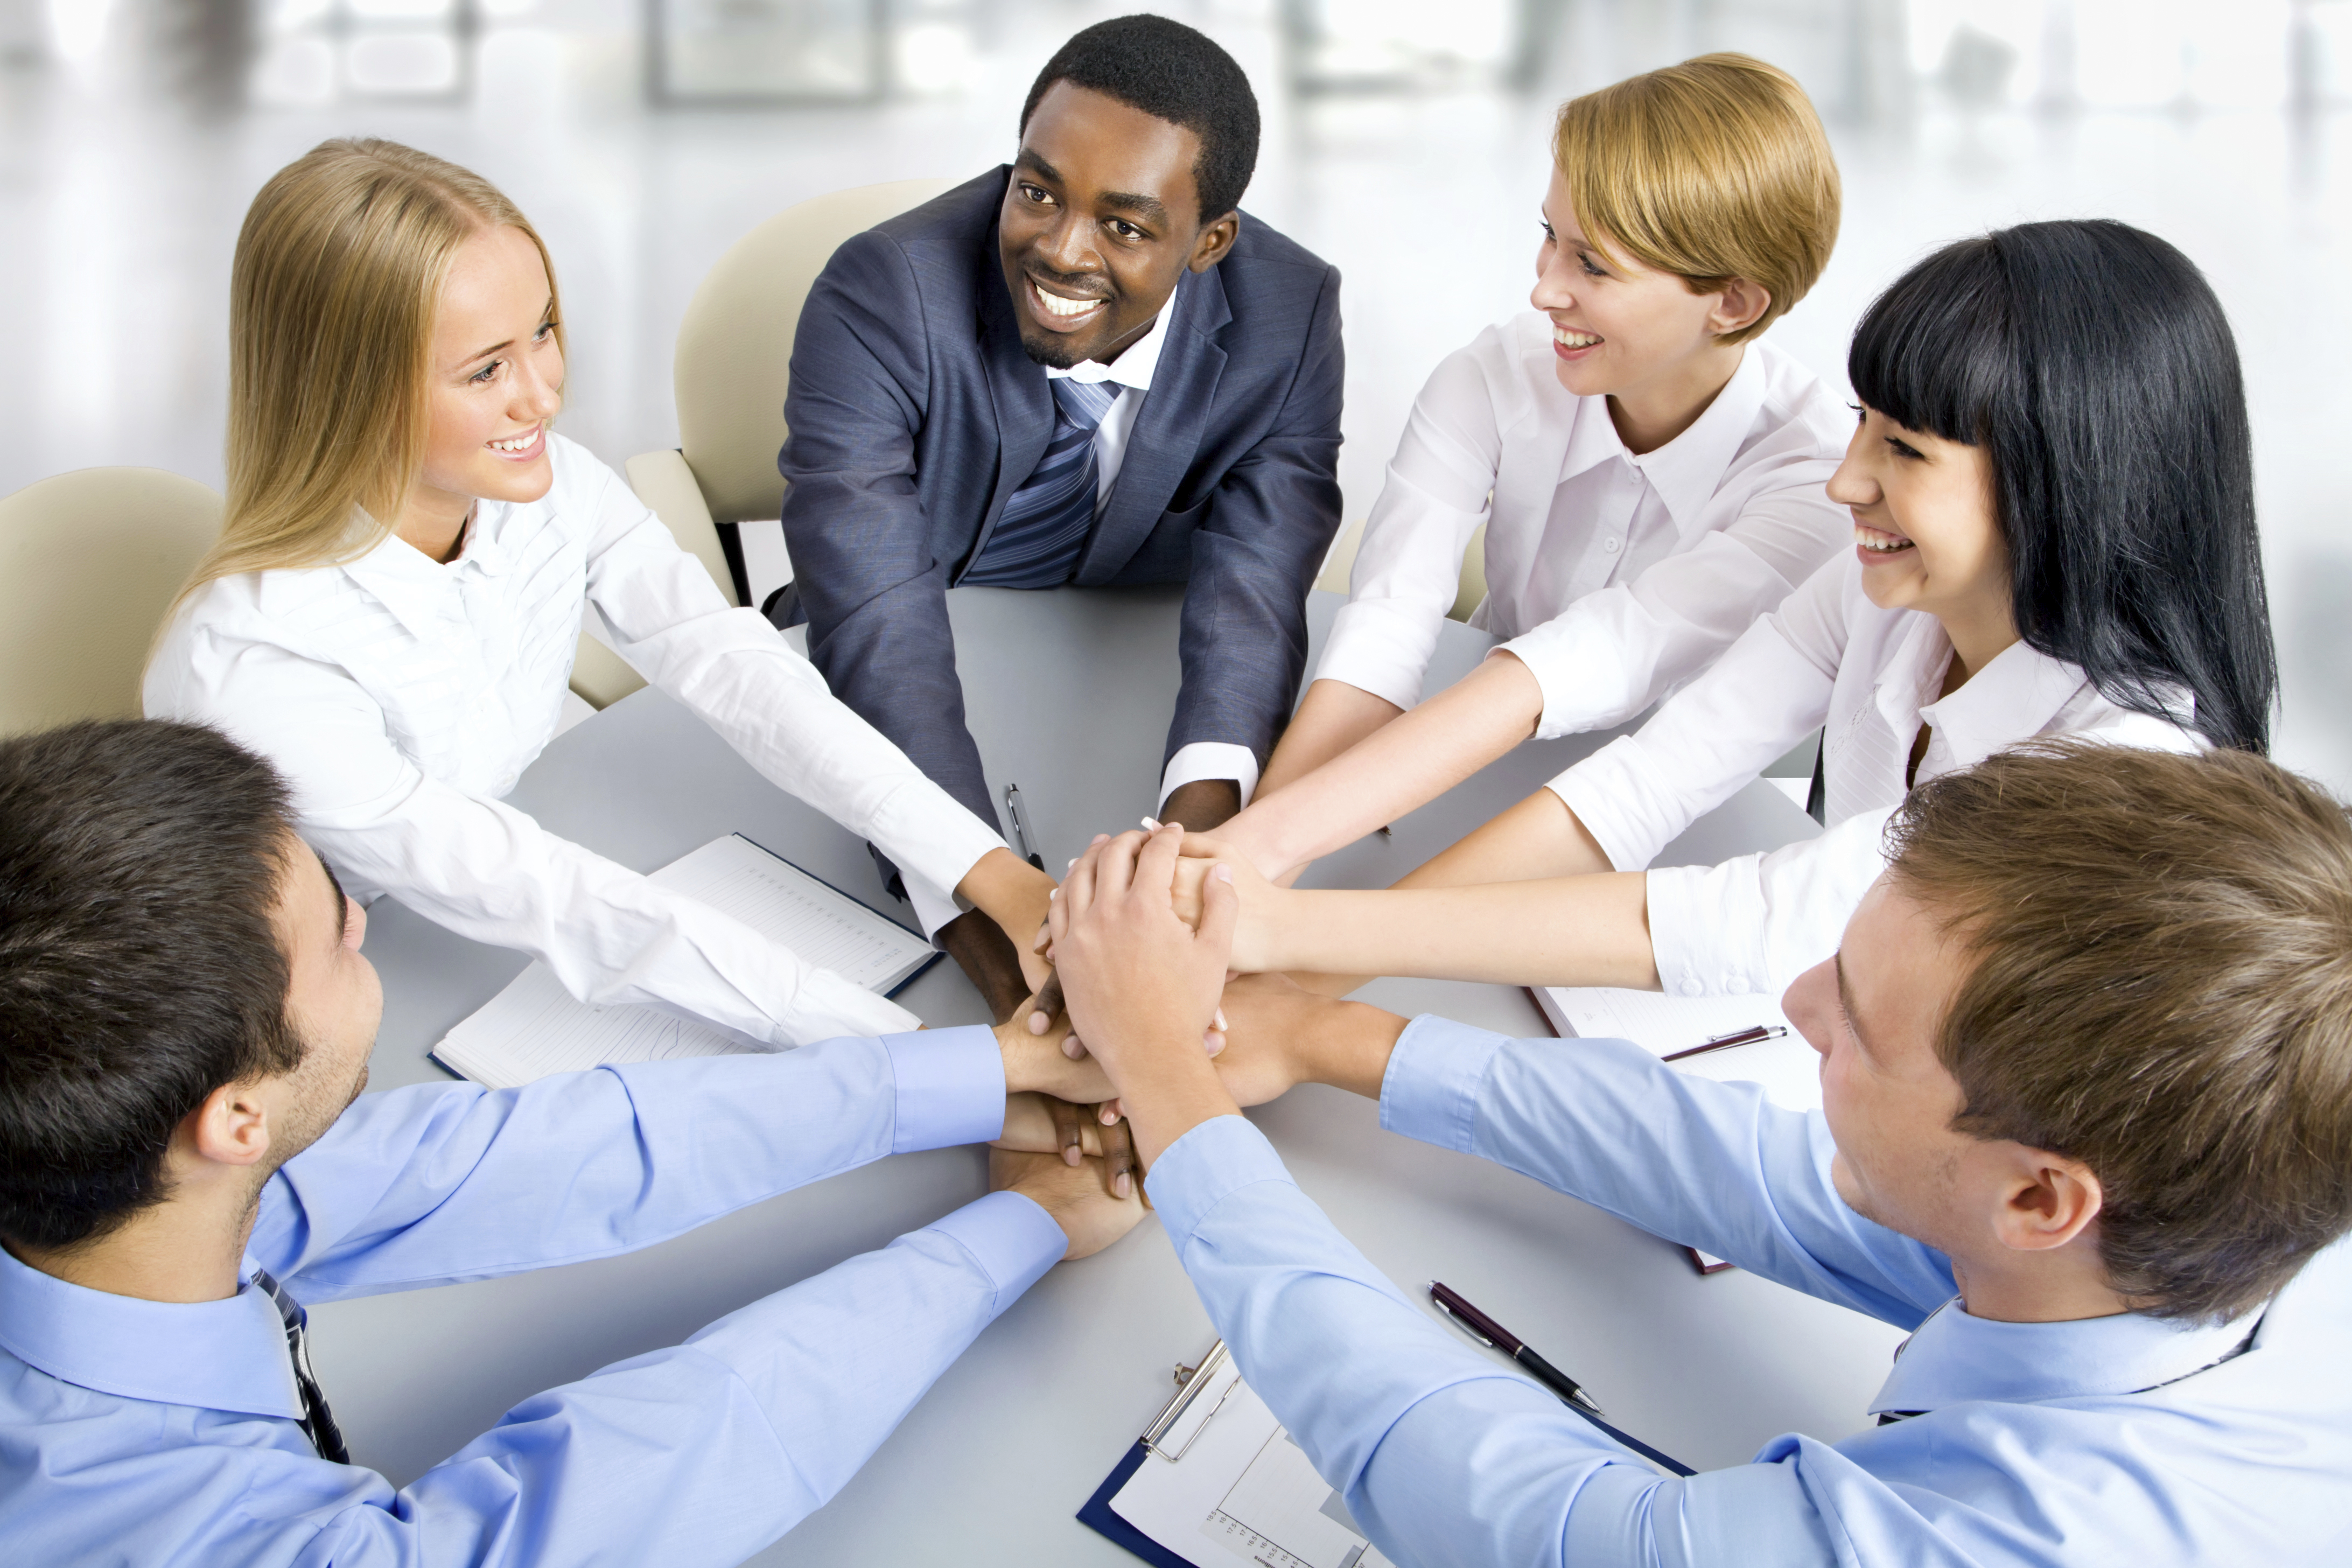 Bonus Time? Research Shows It's Better to Reward Groups Than Individuals